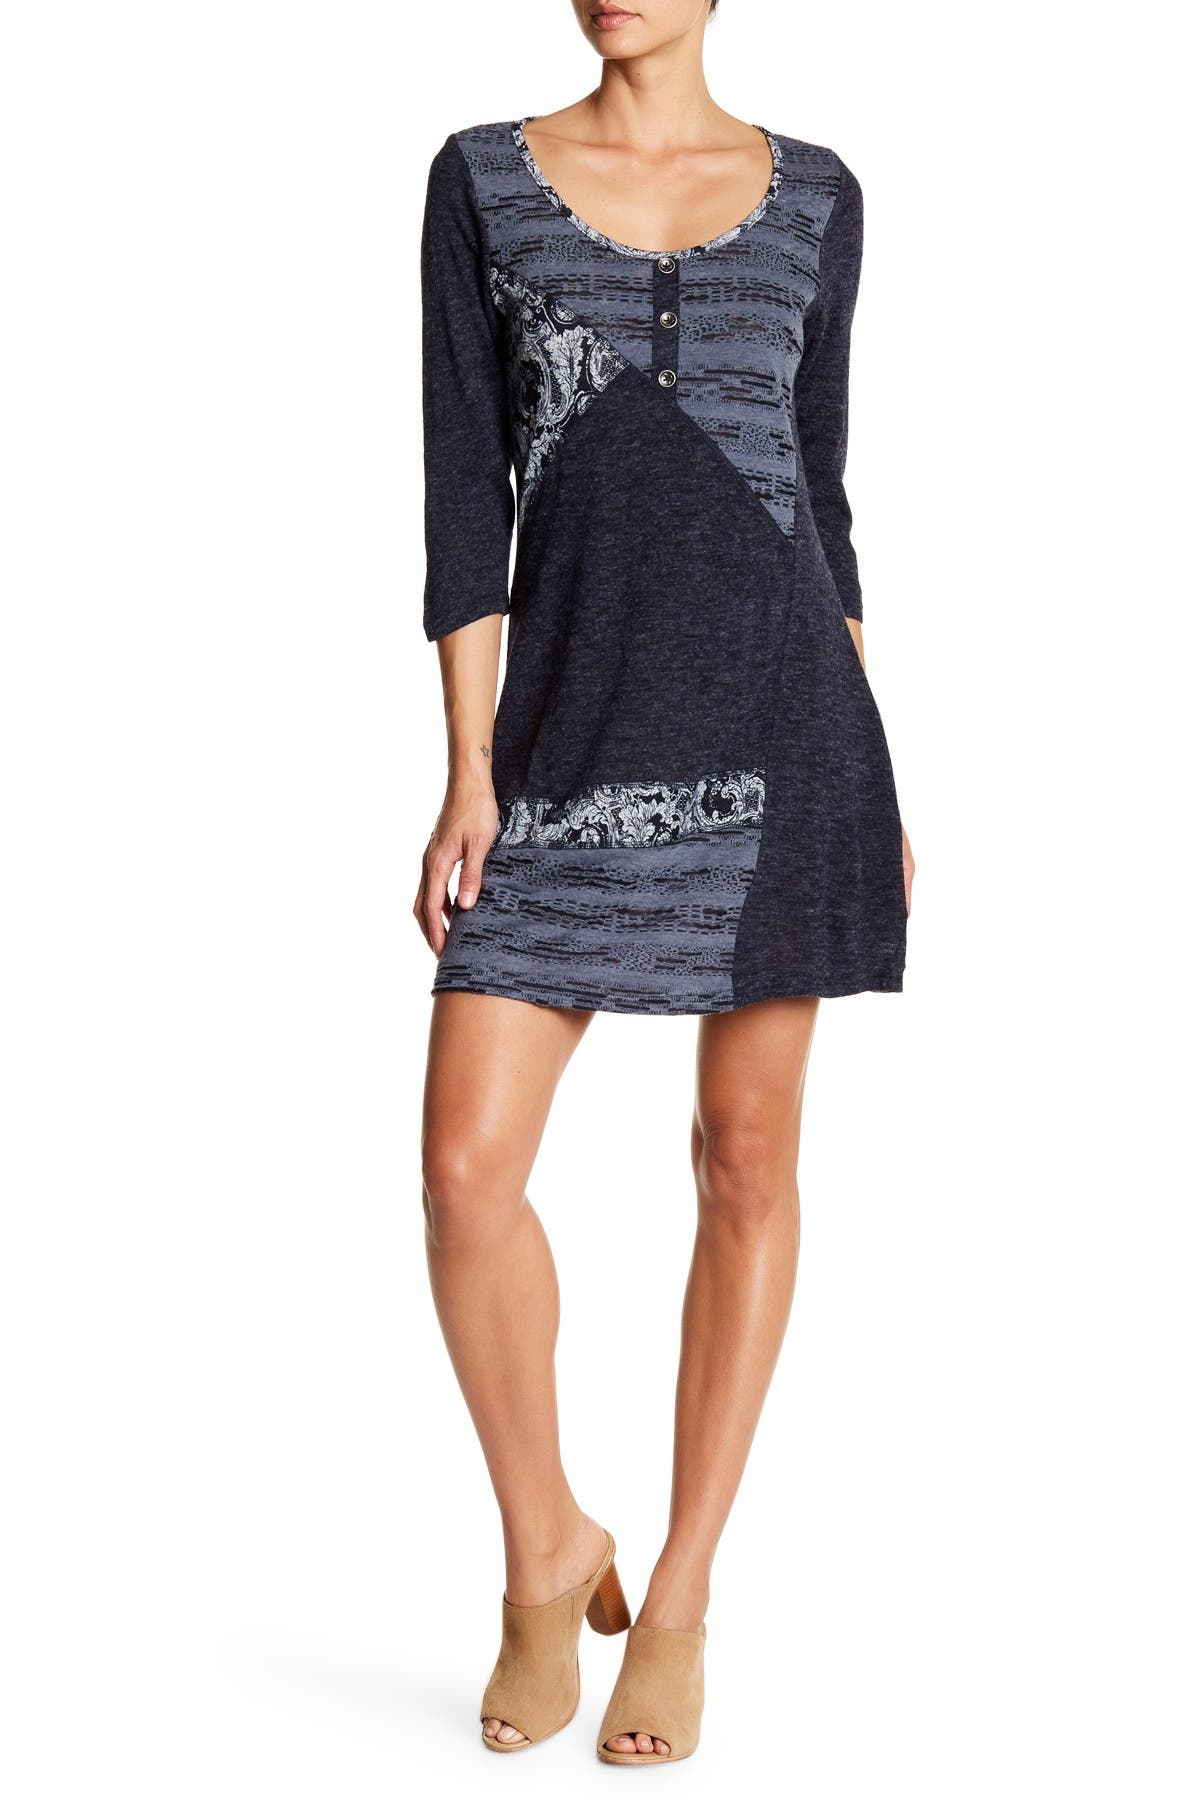 Image of Papillon Multi Patch Fit-And-Flare Sweater Dress